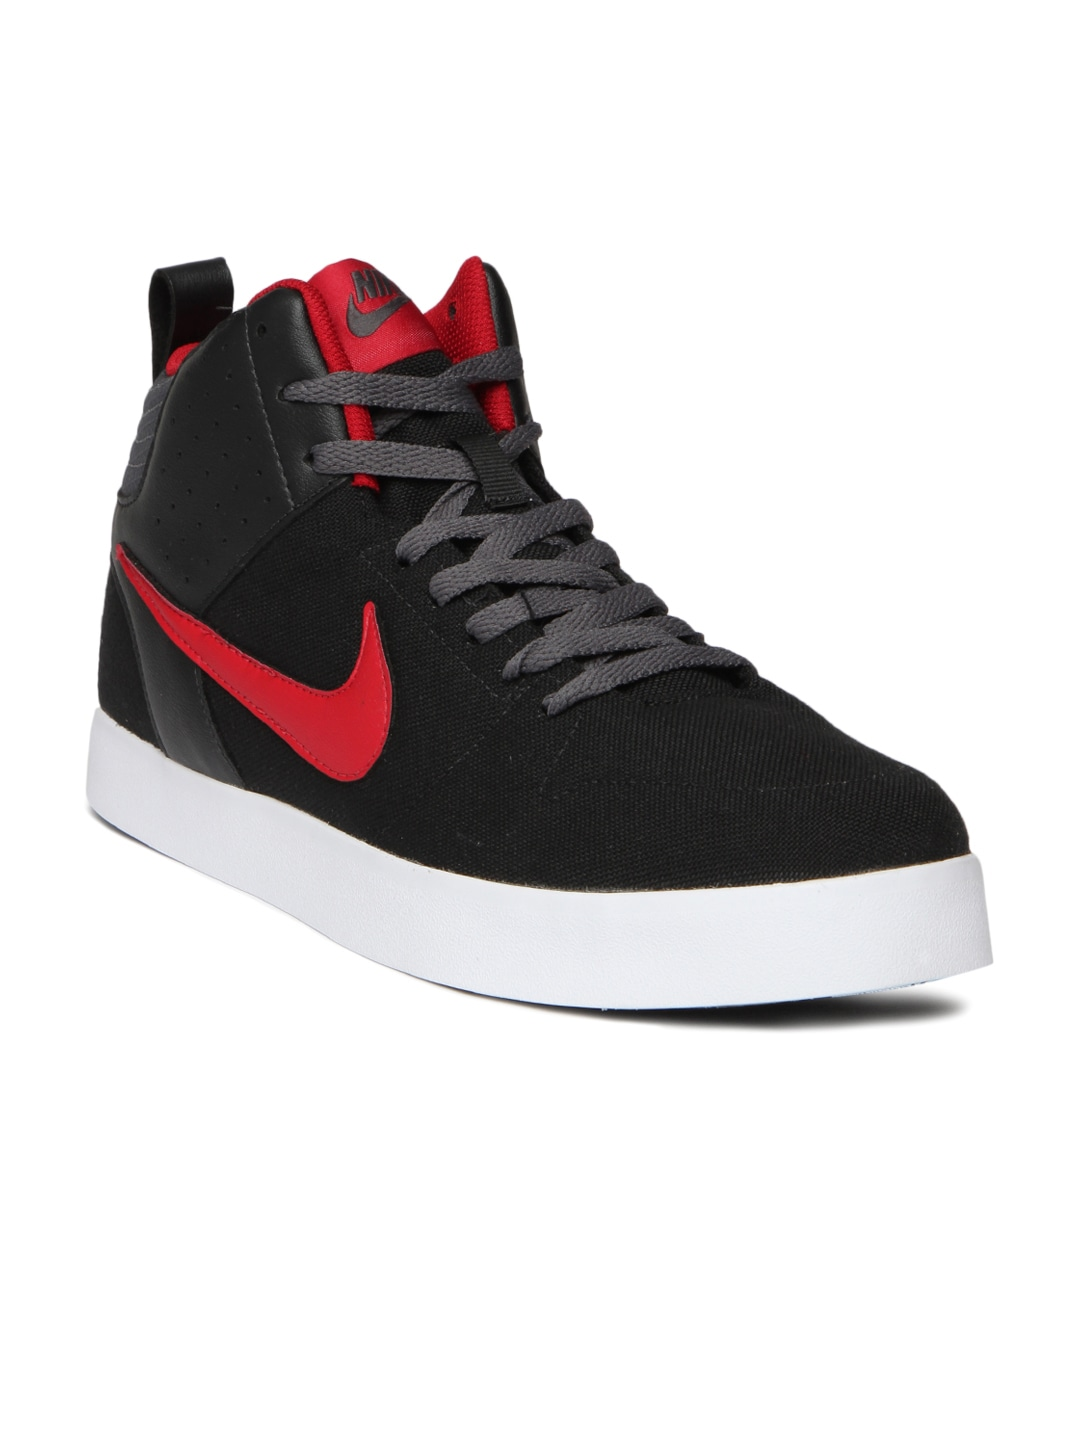 Men Casual Nike Shoes | Heavenly Nightlife